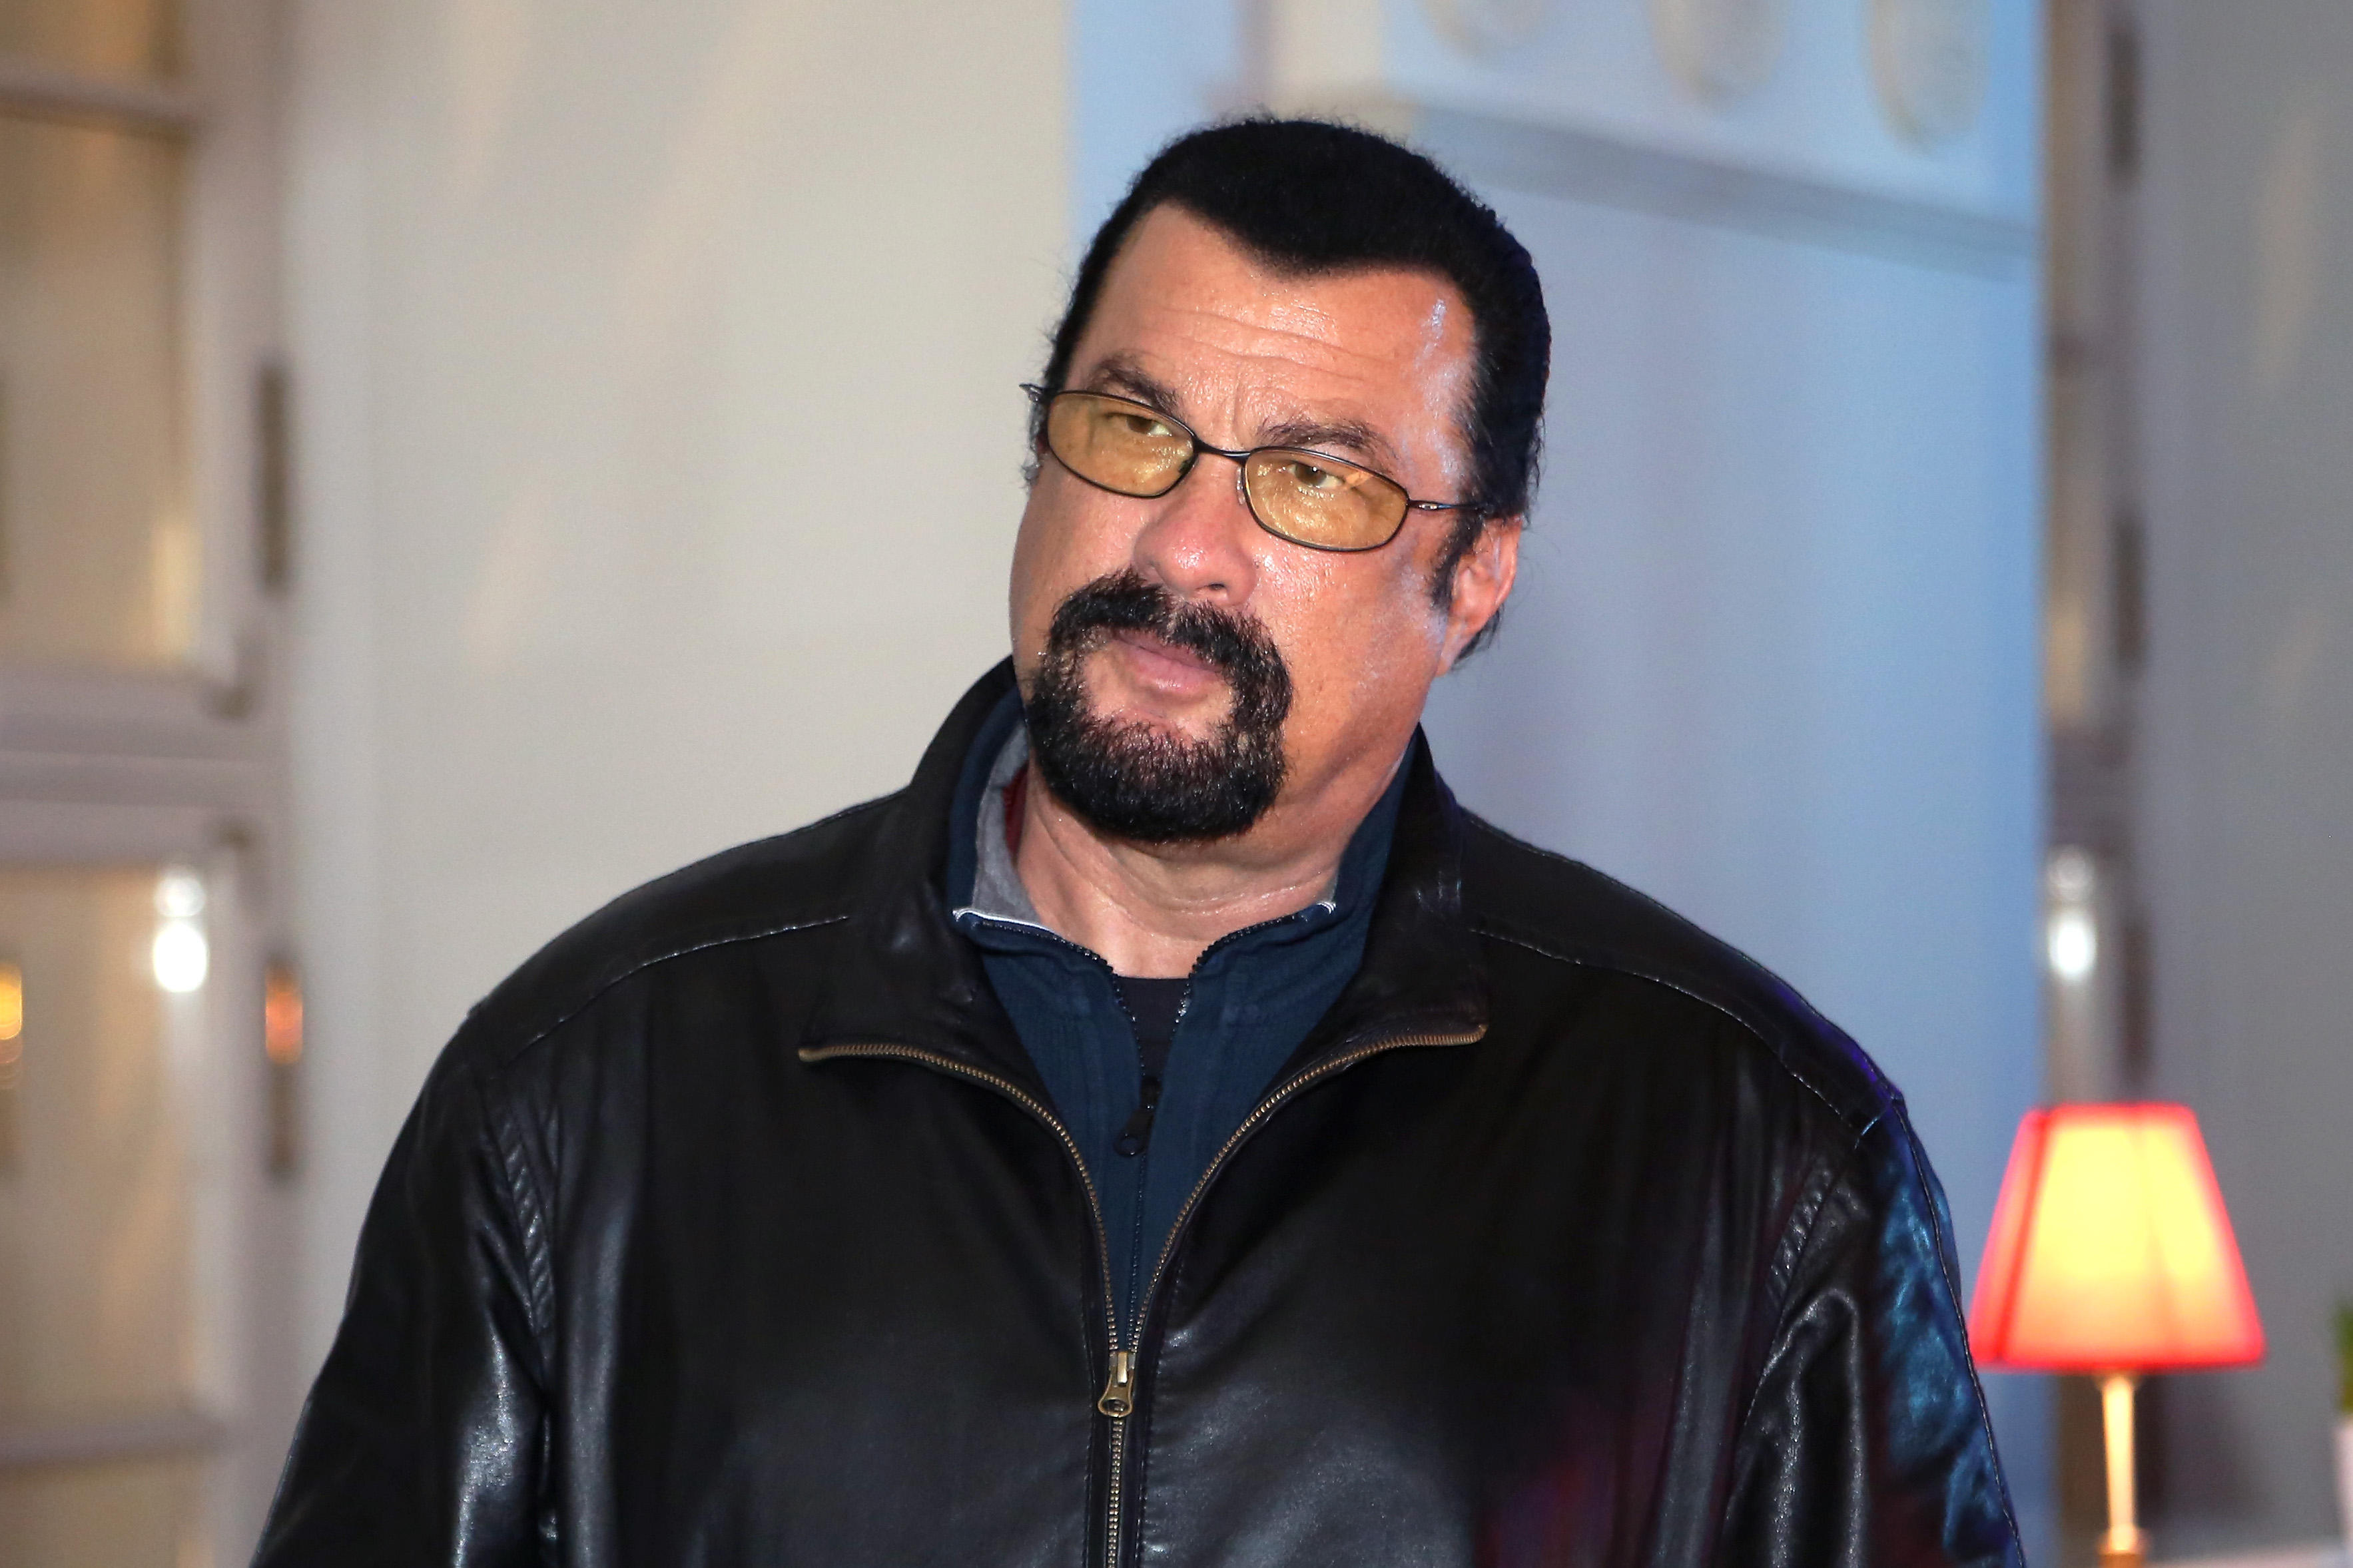 Woman says Steven Seagal sexually assaulted her at ...